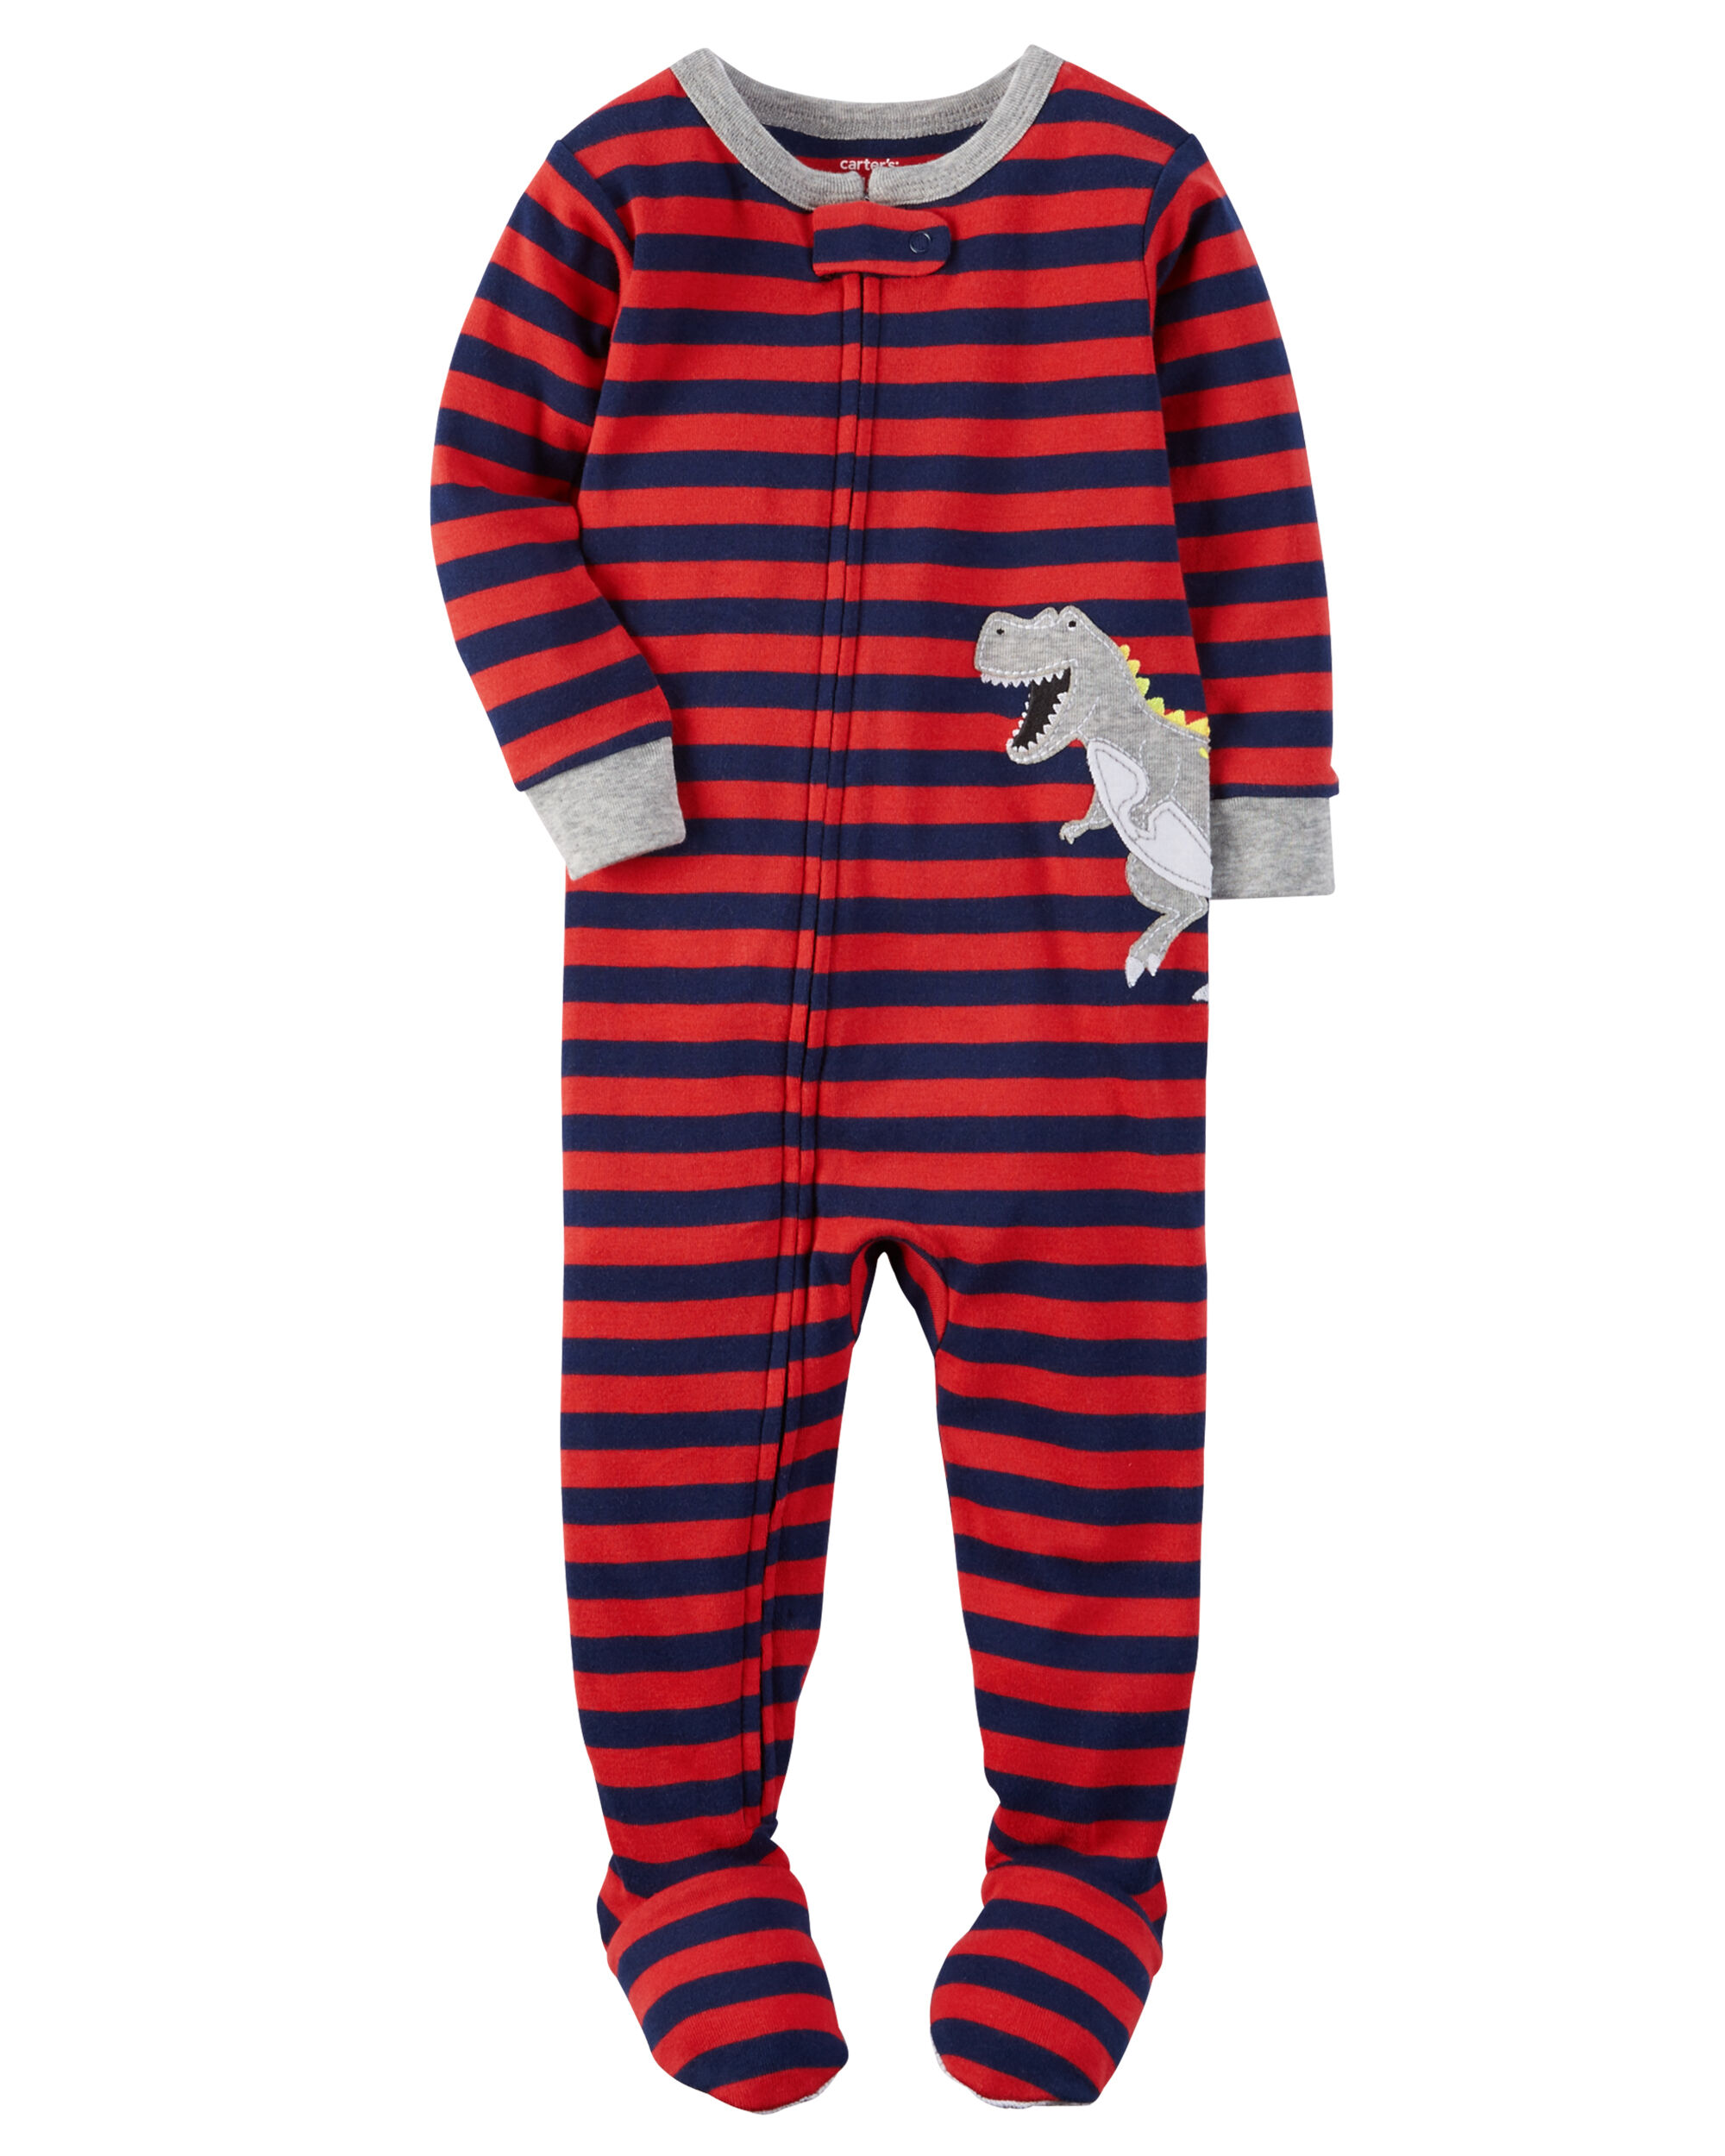 in reviews blanket s helpful piece sleeper pcr sleepers rated image carter one dream product pajamas best girls customer